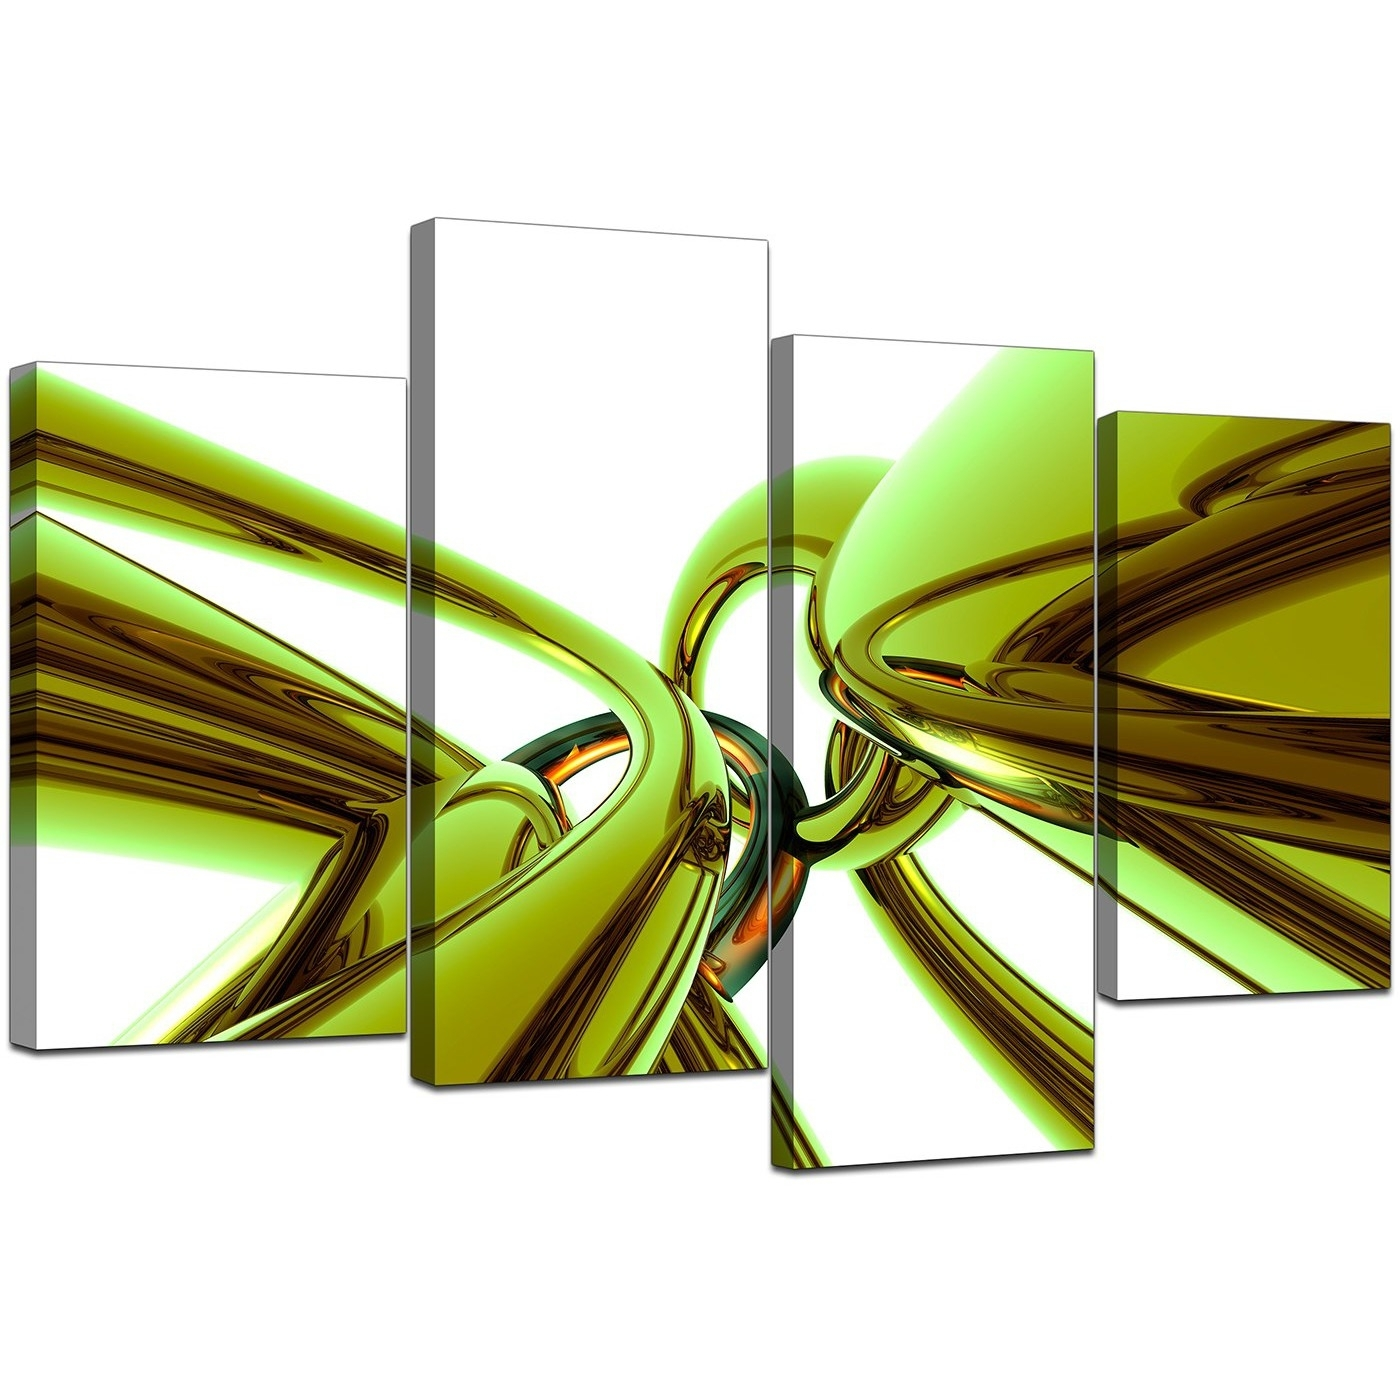 Abstract Canvas Wall Art In Green For Your Living Room – Set Of 4 Inside Most Up To Date Lime Green Canvas Wall Art (View 6 of 15)